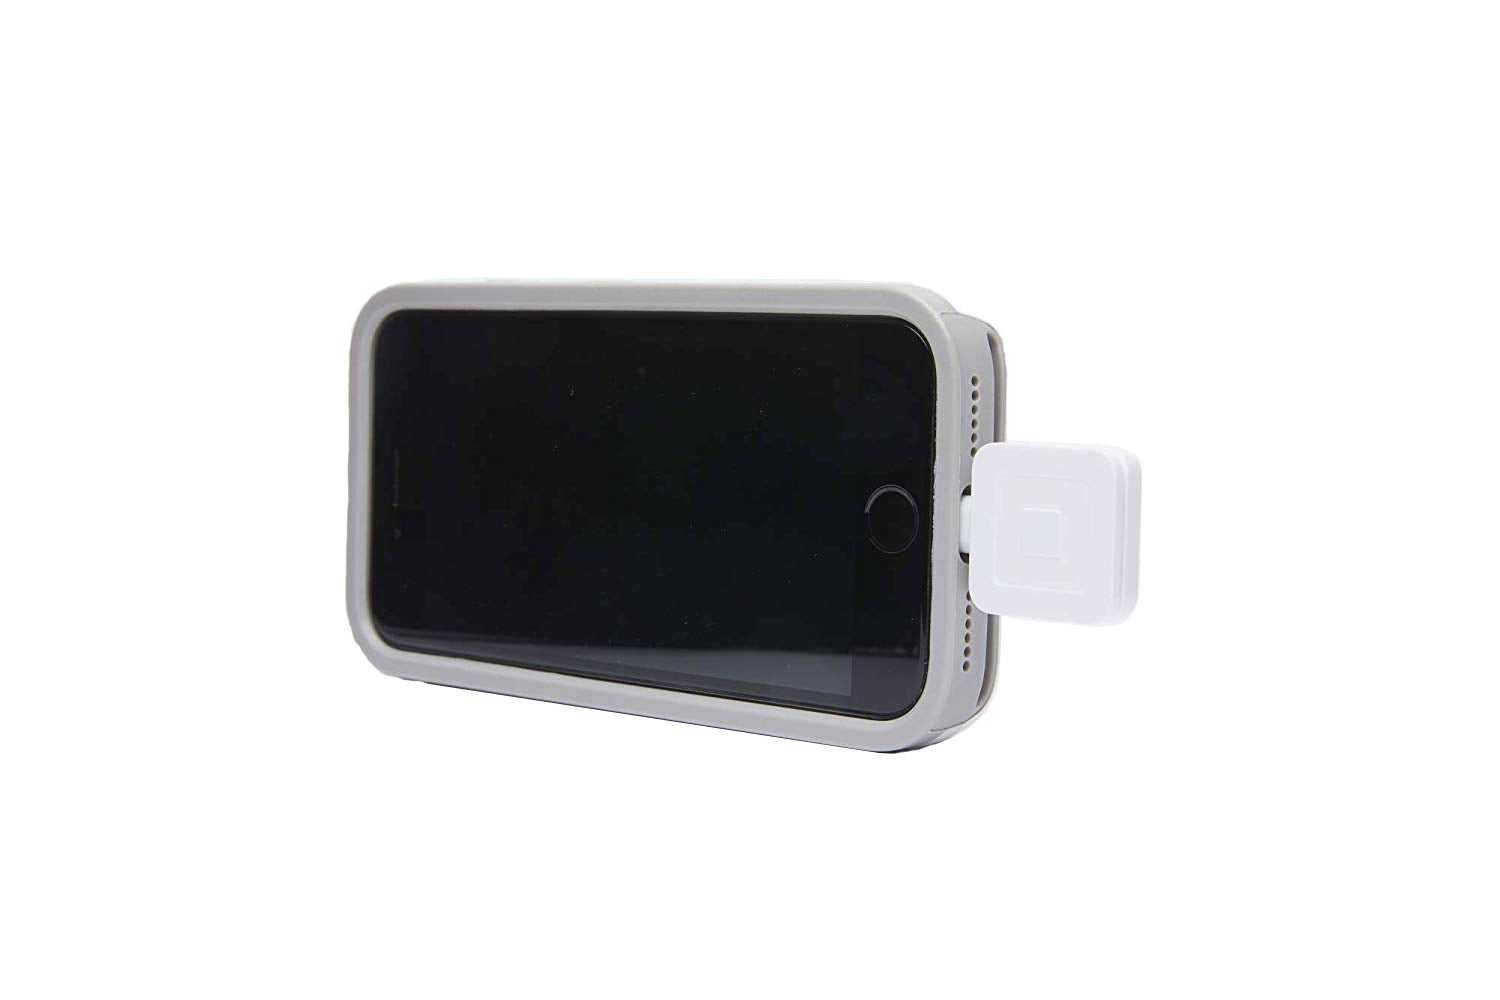 iPhone 6/7/8 in L7 Case for Mobile POS System